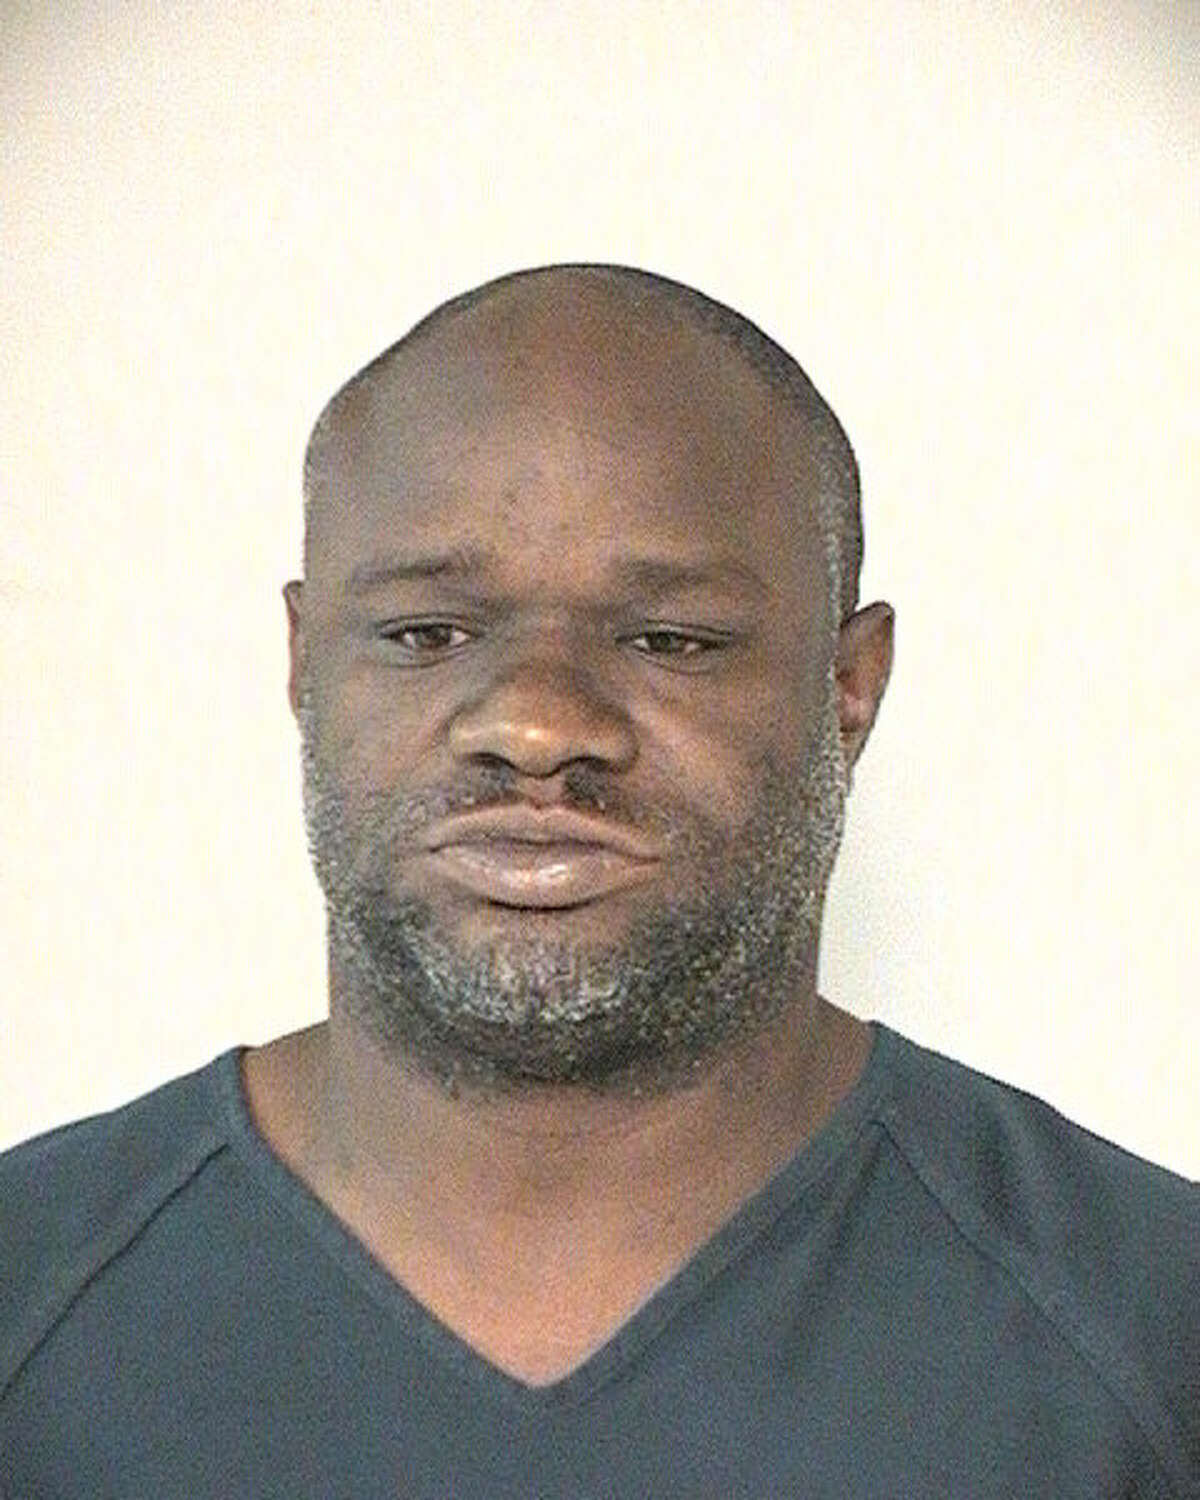 Robert Dozier, 41, of Richmond, is in the Fort Bend County Jail under a $50,000 bond.